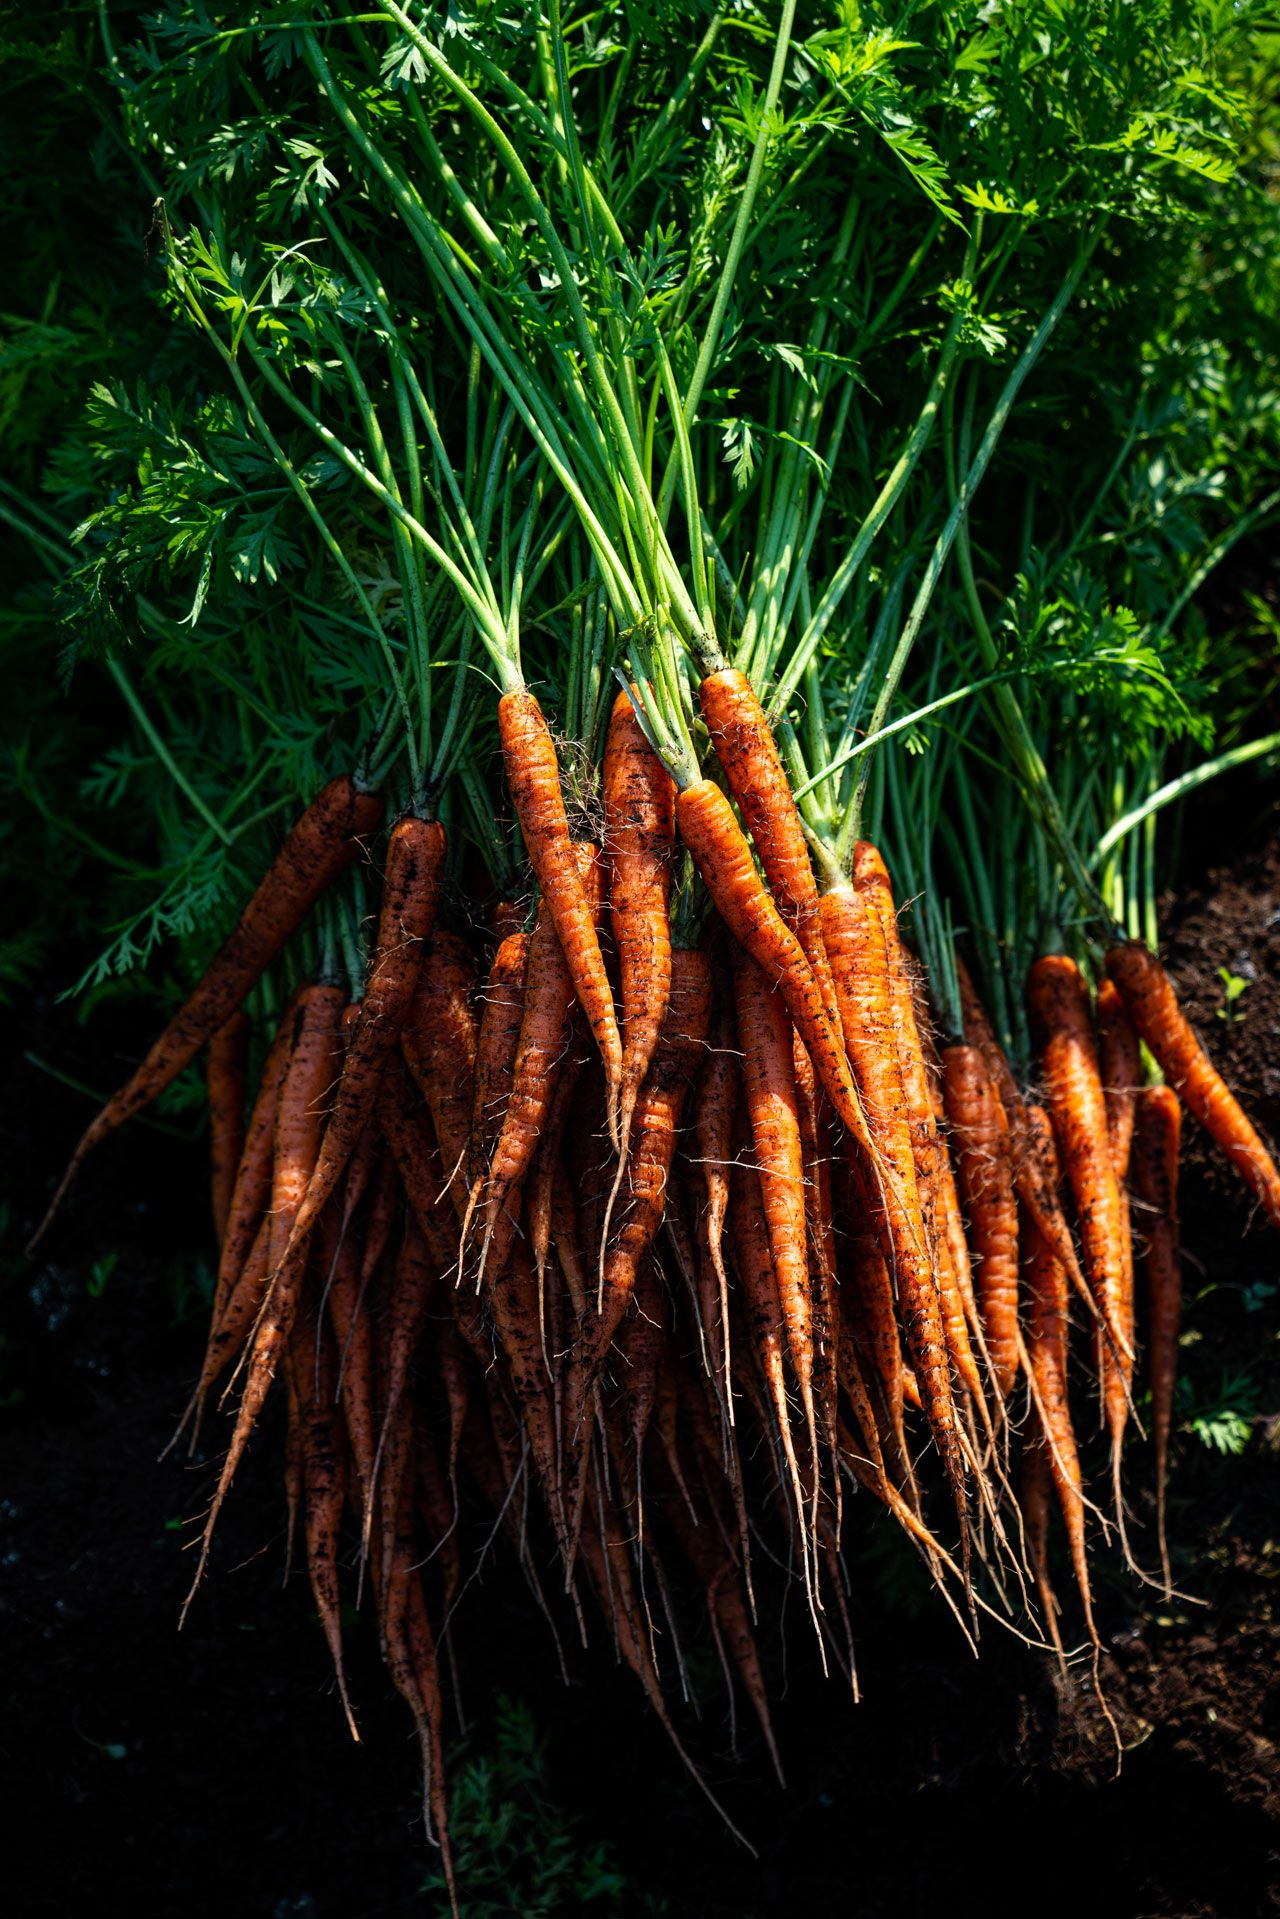 carrots freshly out of the ground still covered in dirt by Bruno Florin for Sollio Agriculture